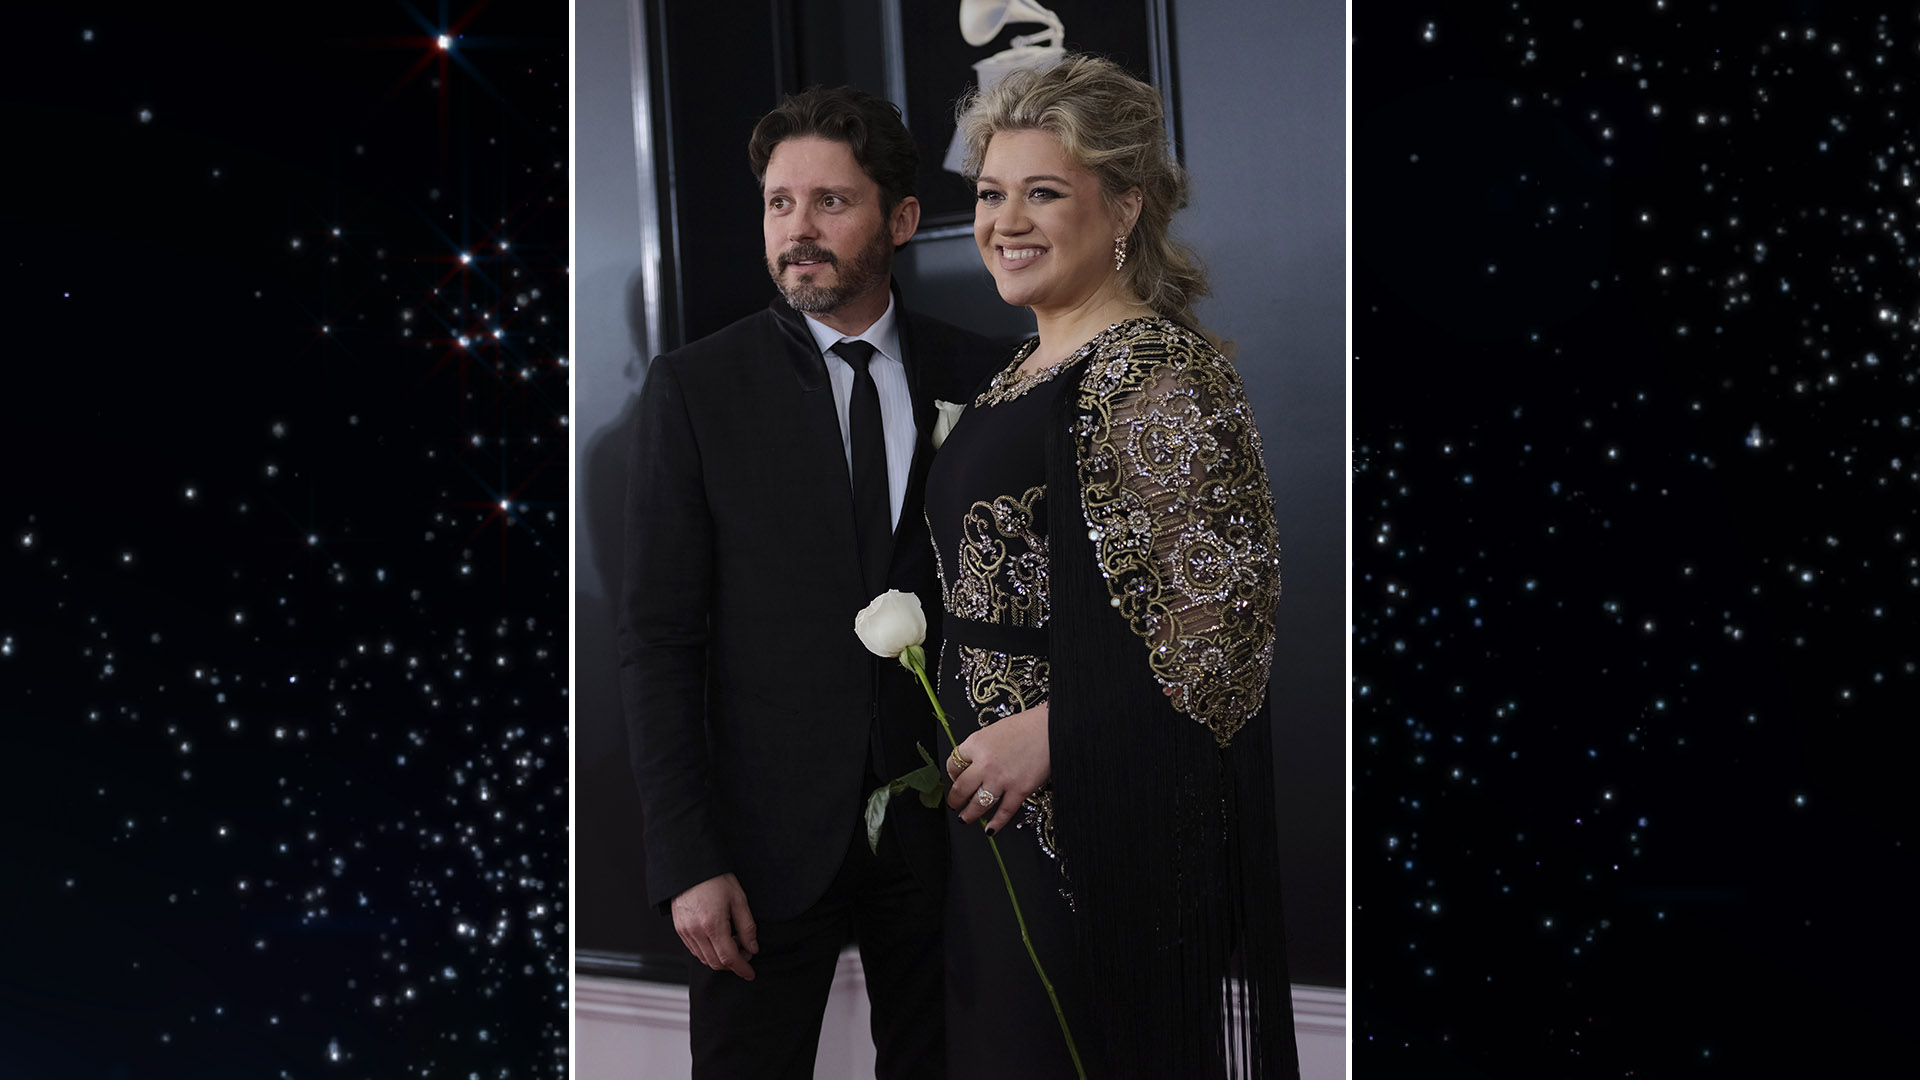 Before presenting the GRAMMY award for Best New Artist, Kelly Clarkson took a photo with her main squeeze, husband Brandon Blackstock.